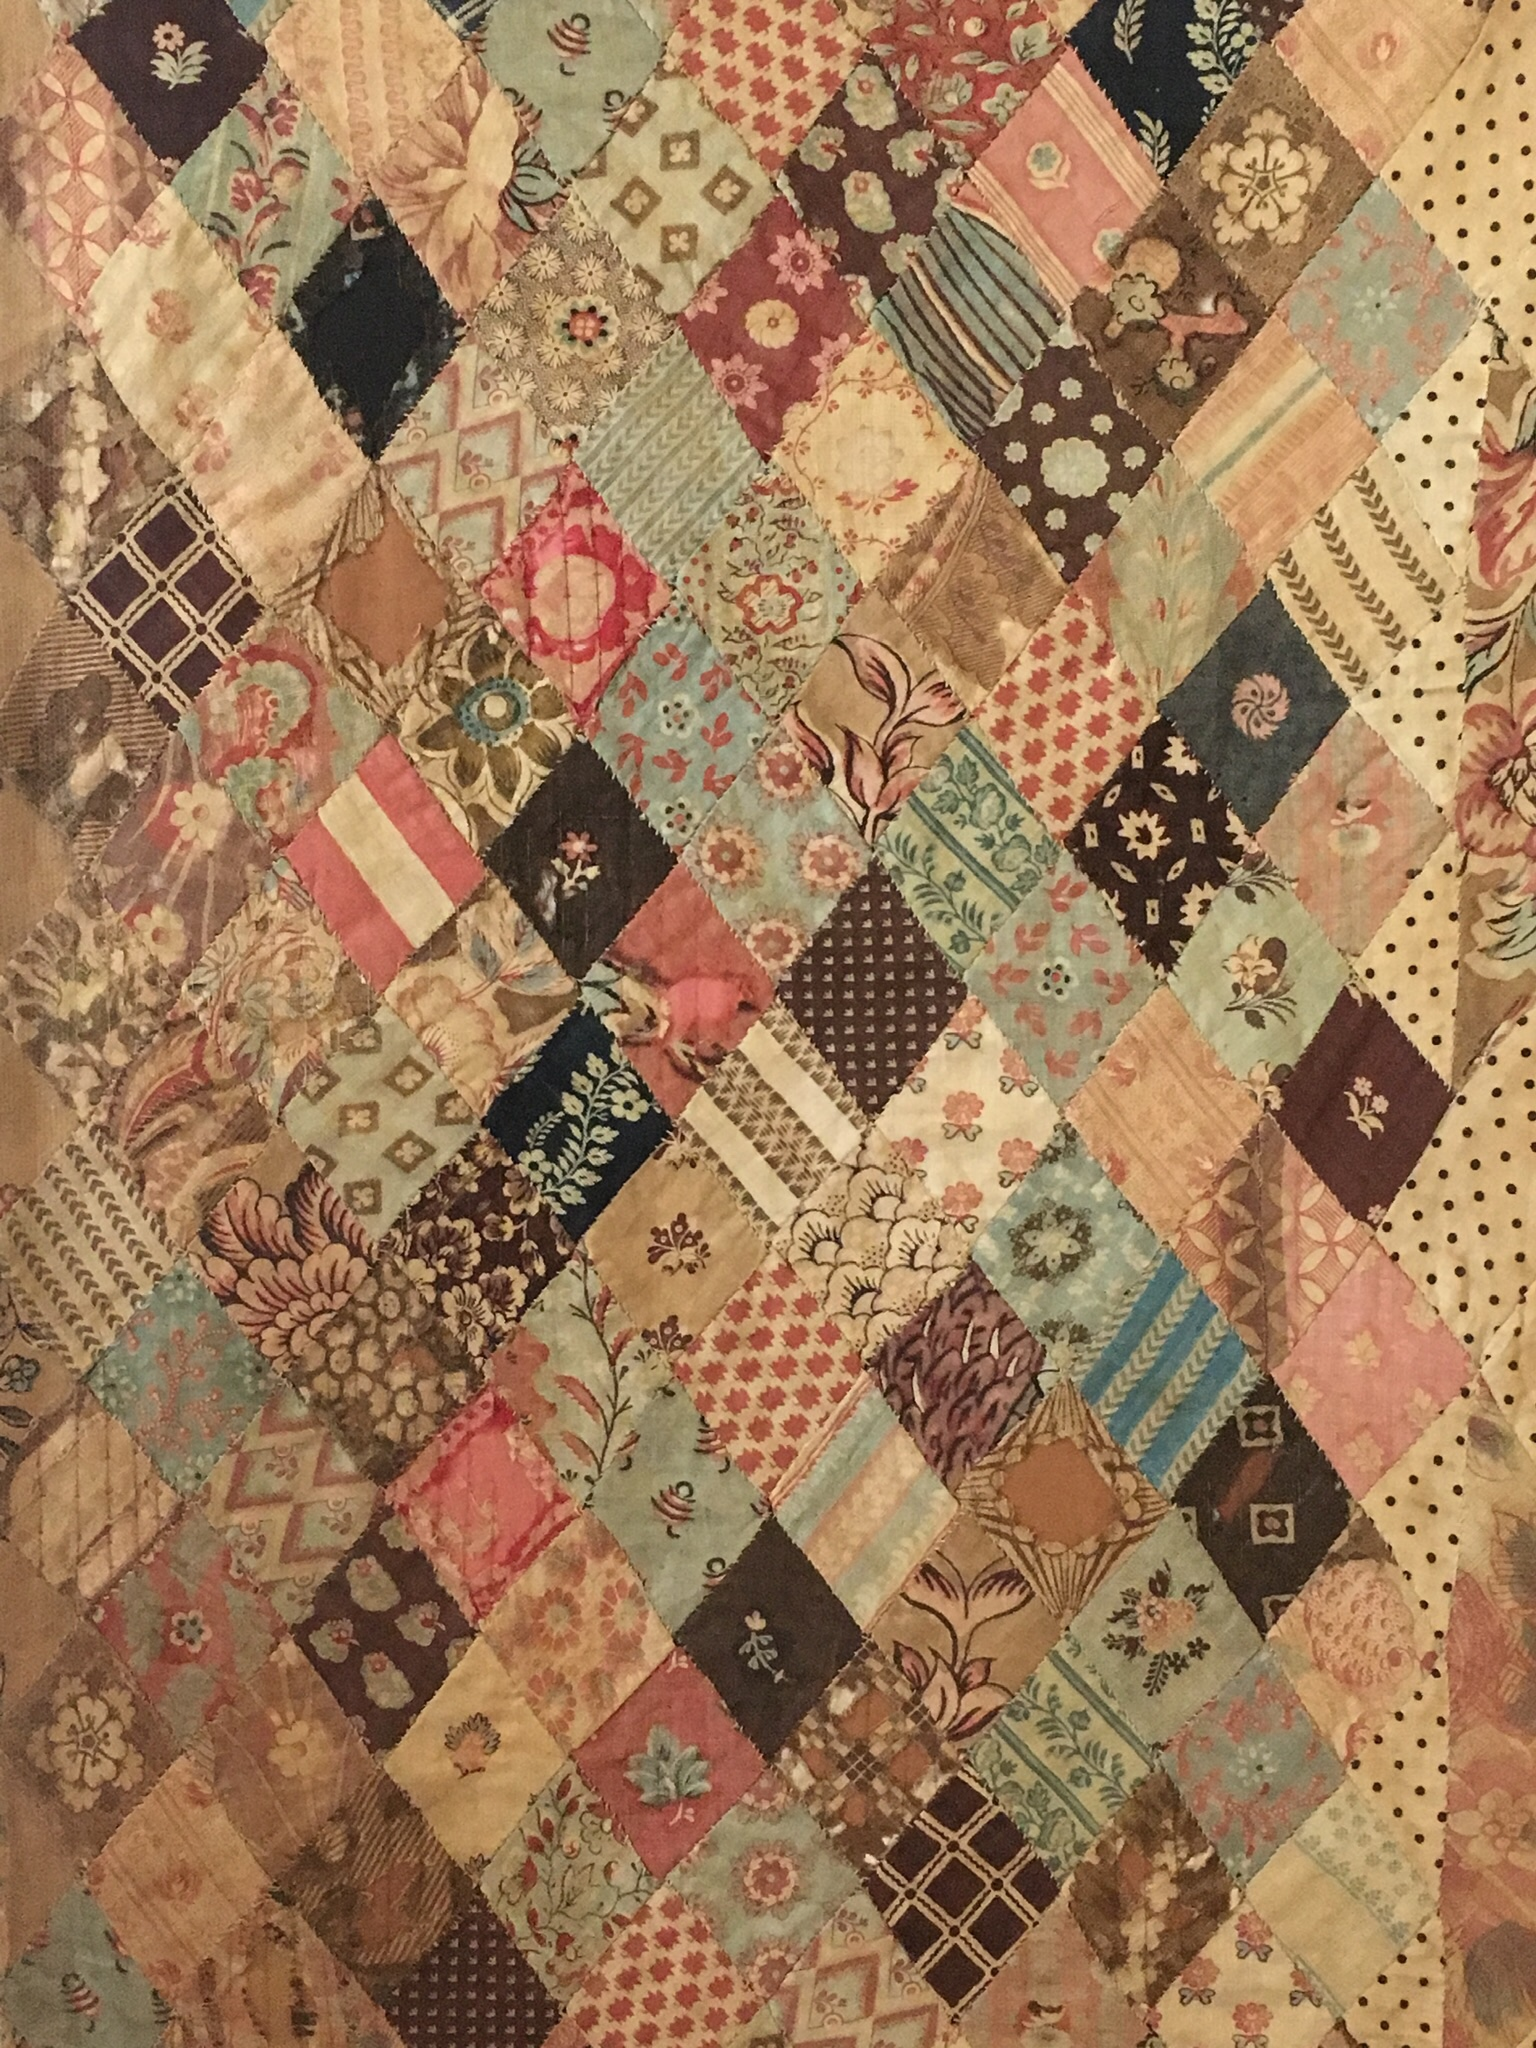 Close-up of the Austen family quilt (actually a coverlet rather than a quilt as it has no batting). The border alone contains 2,500 symmetrical diamond-shaped pieces, all hand-stitched.